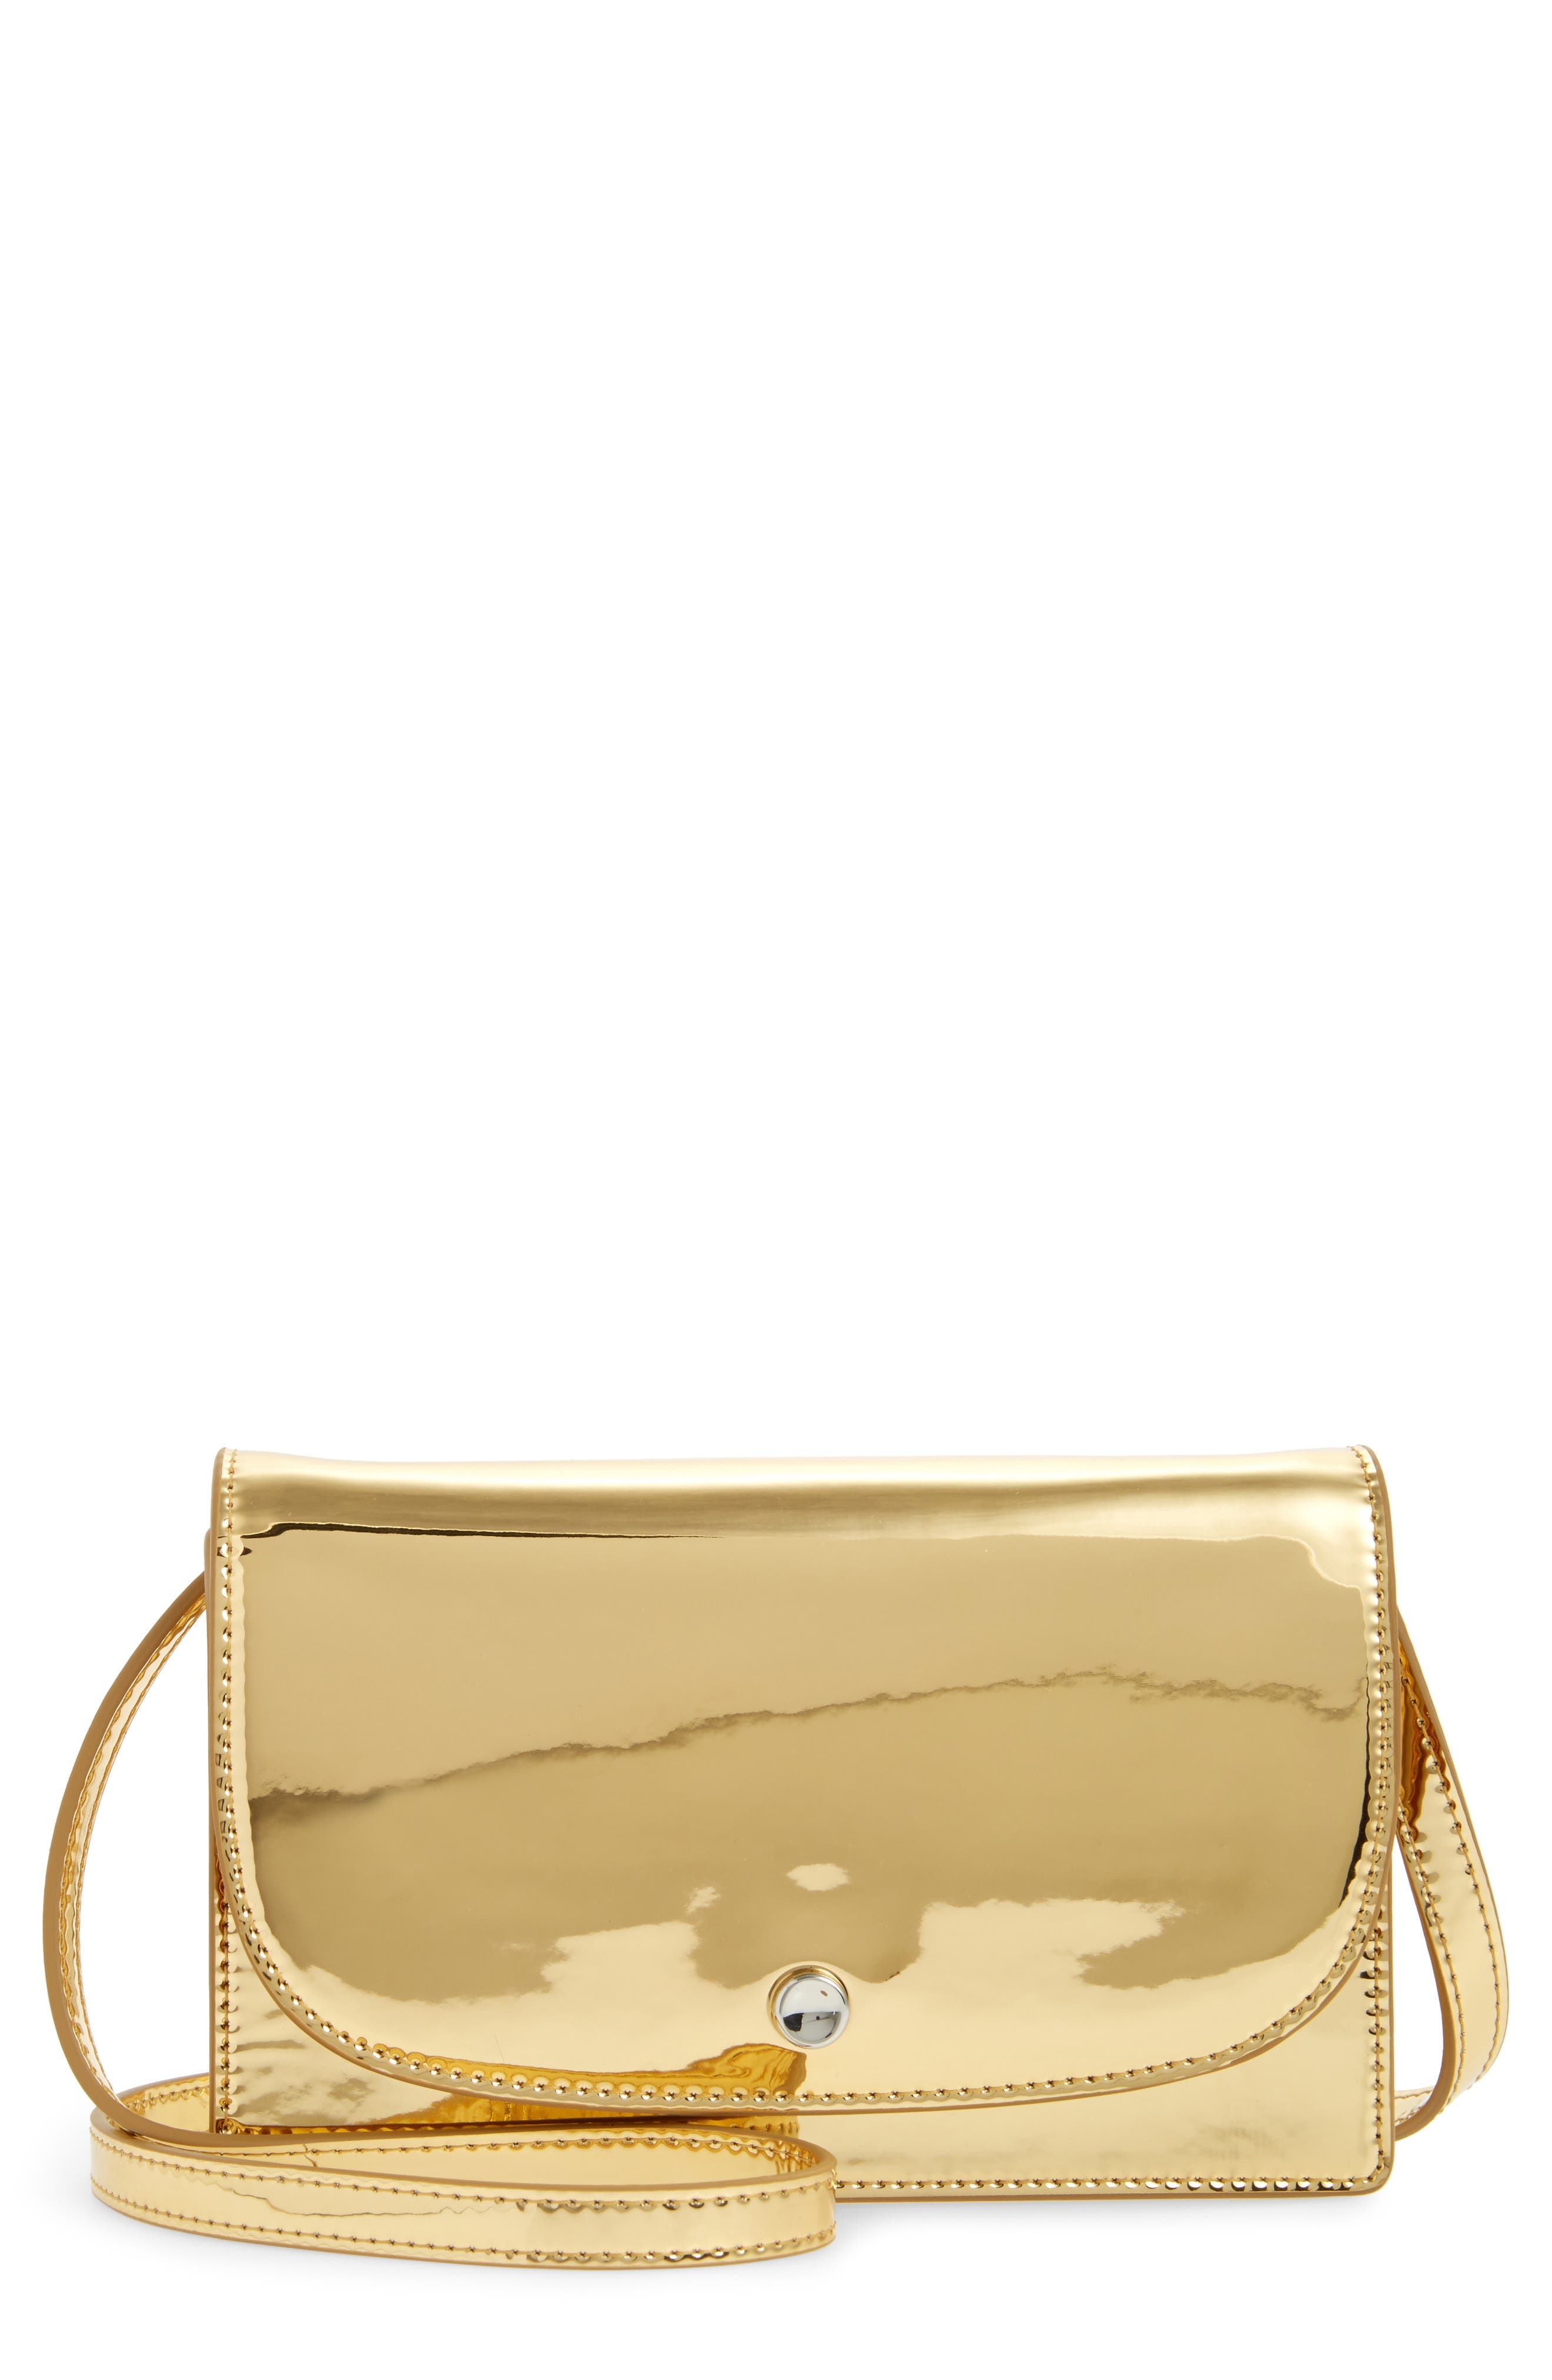 Elizabeth and James Mini Eloise Crossbody Bag